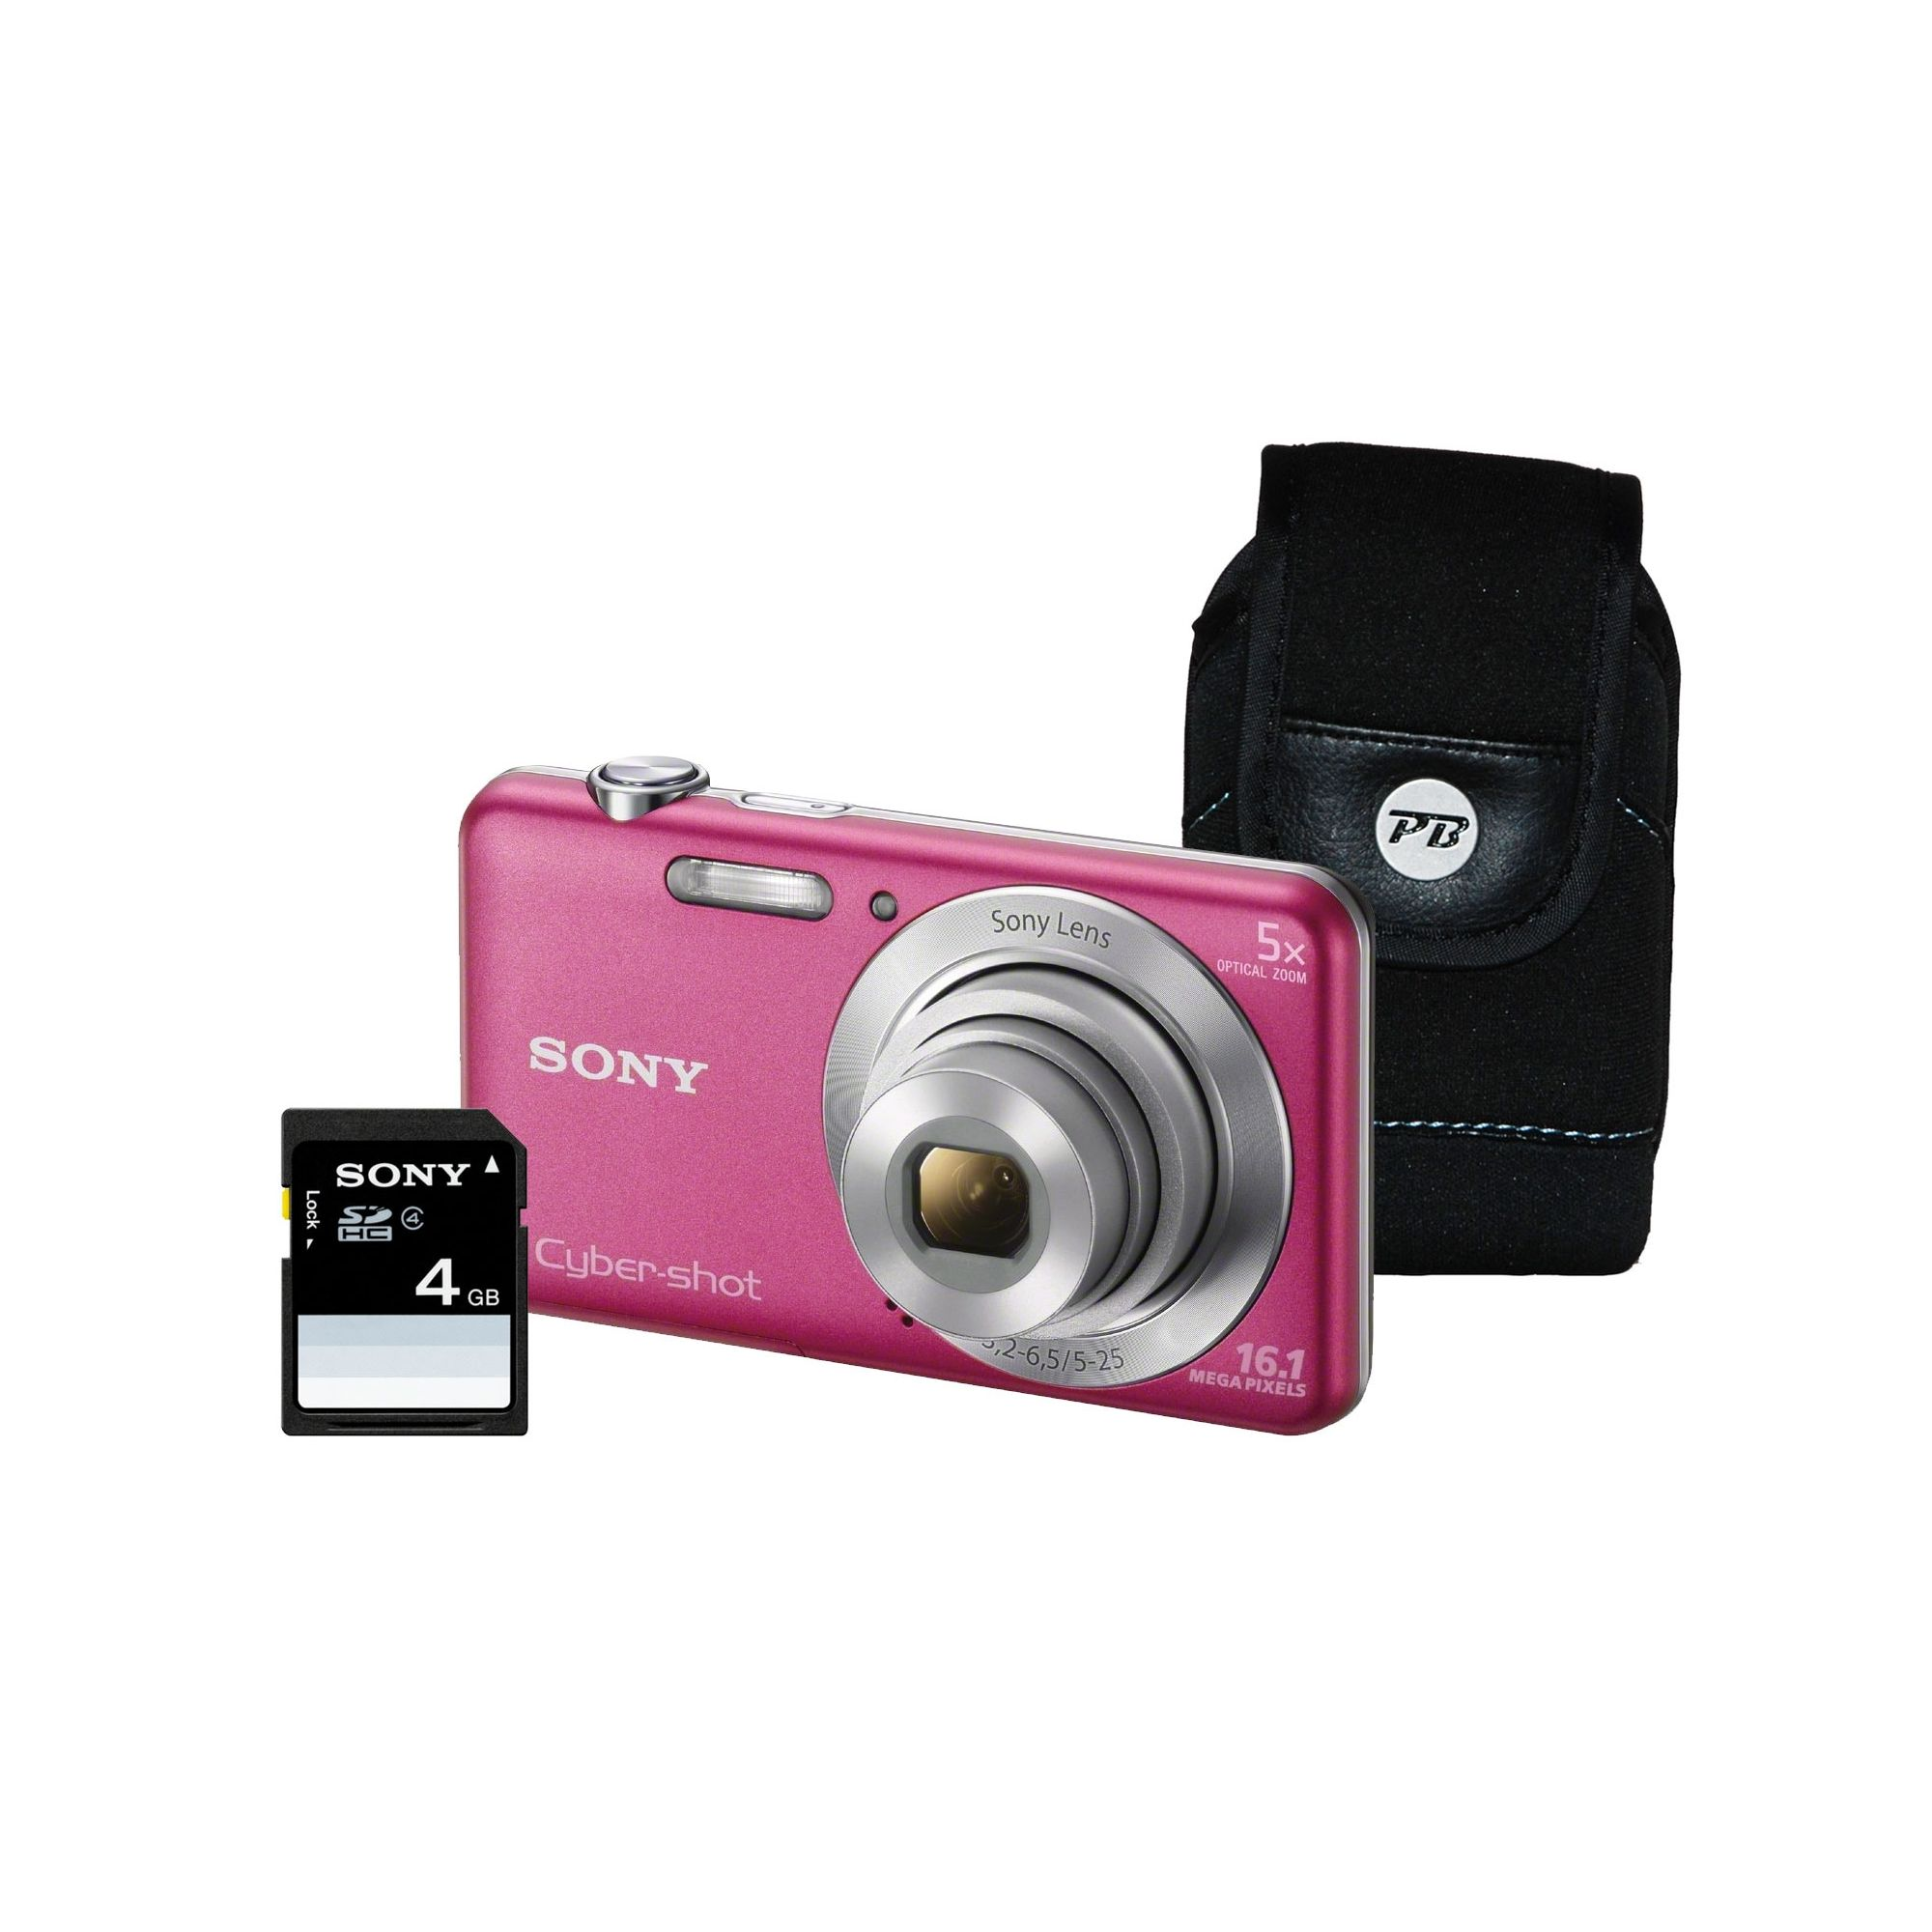 Sony DSC-W710 Pink Camera Kit inc 4GB SD Card and Case